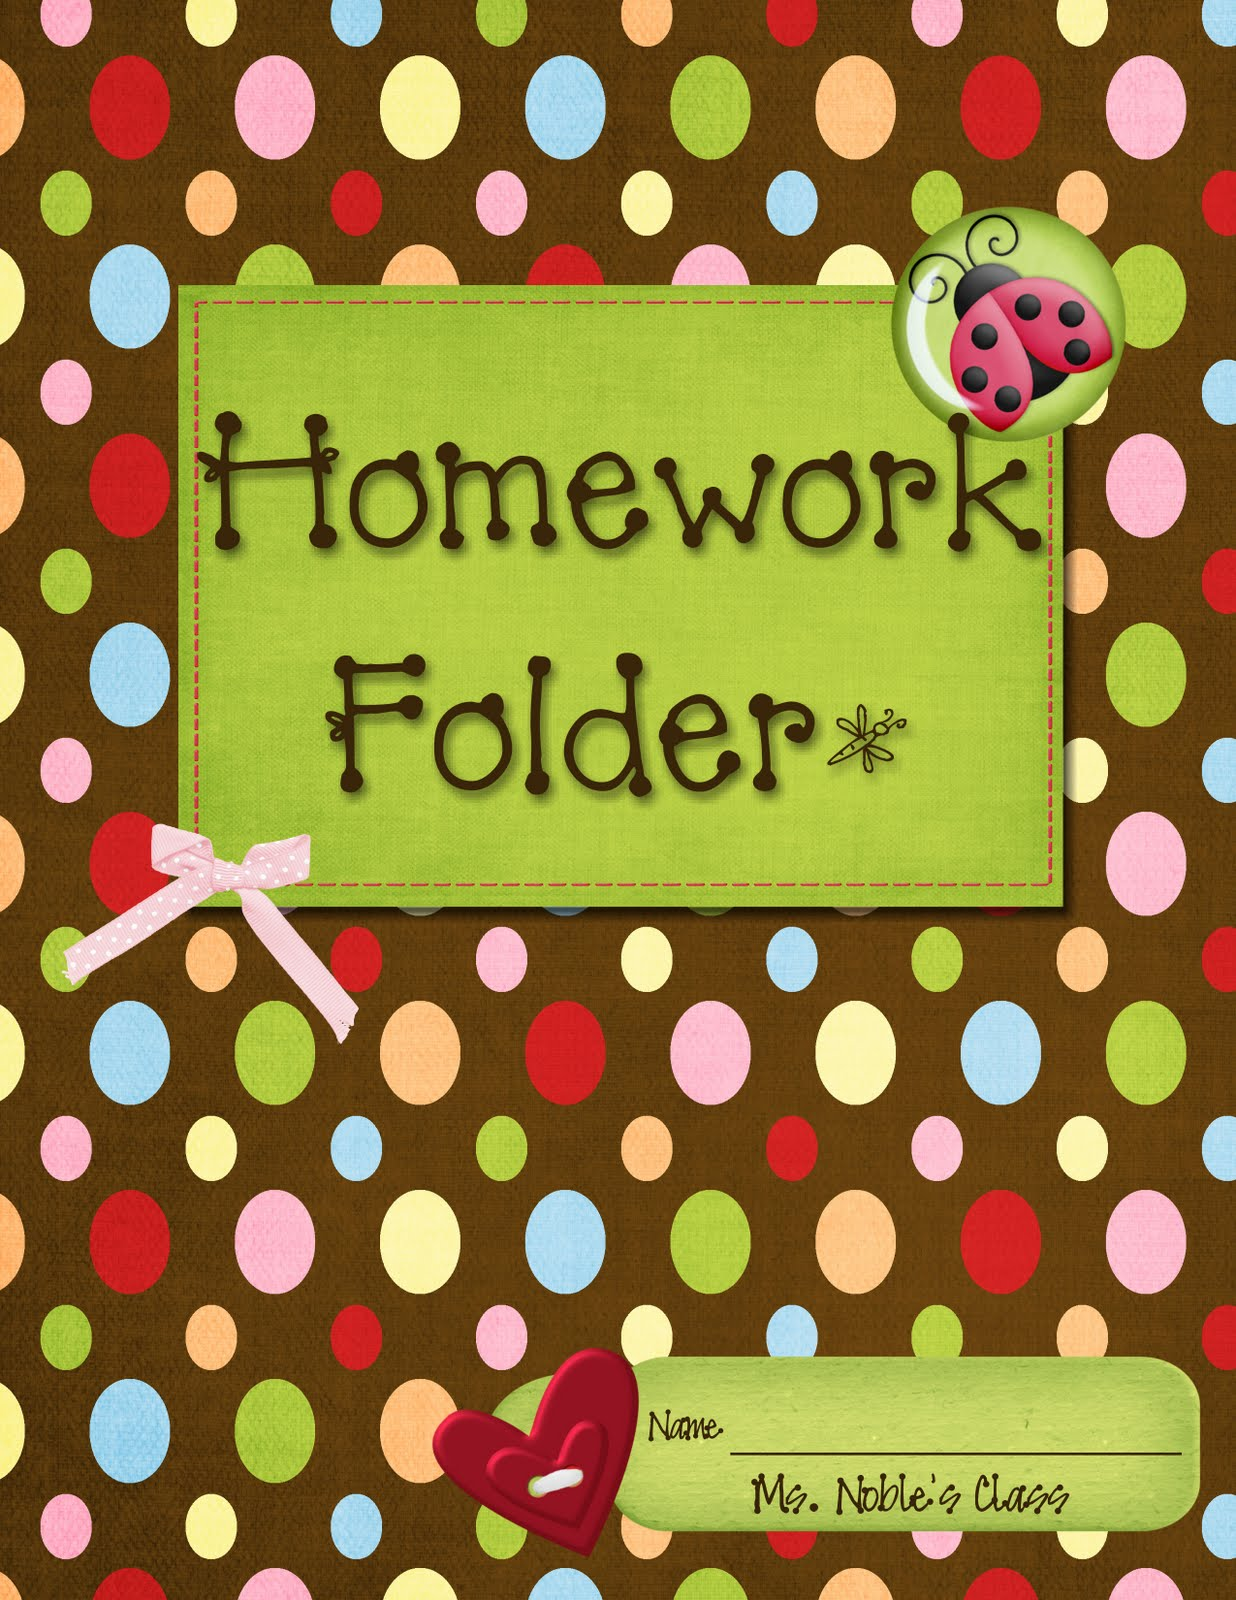 Homework book cover